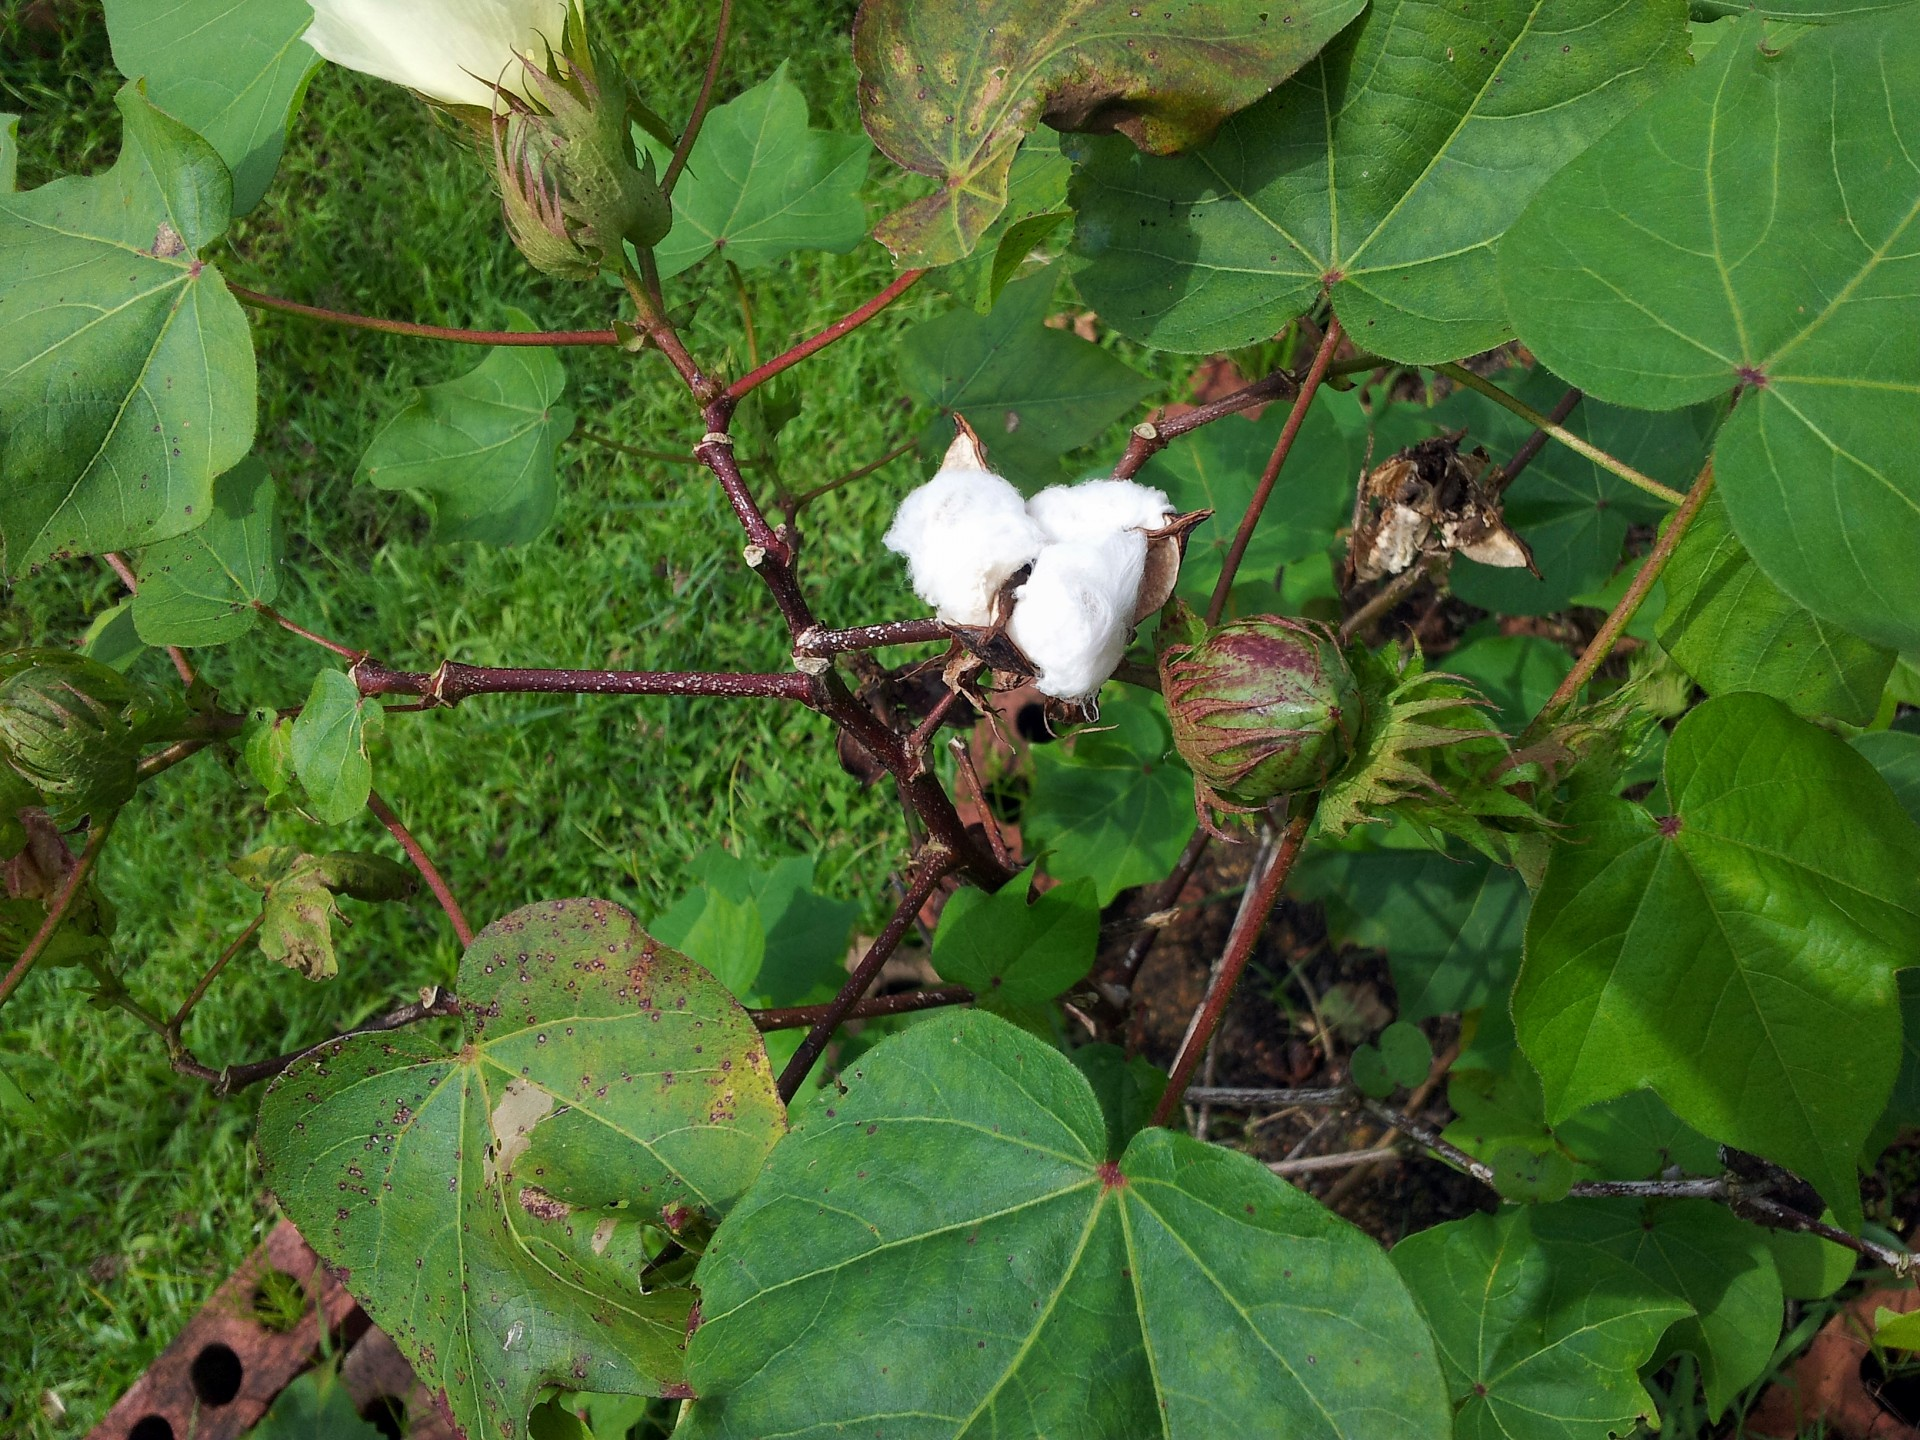 Samsung Wallpaper Hd Cotton Plant With Buds Free Stock Photo Public Domain